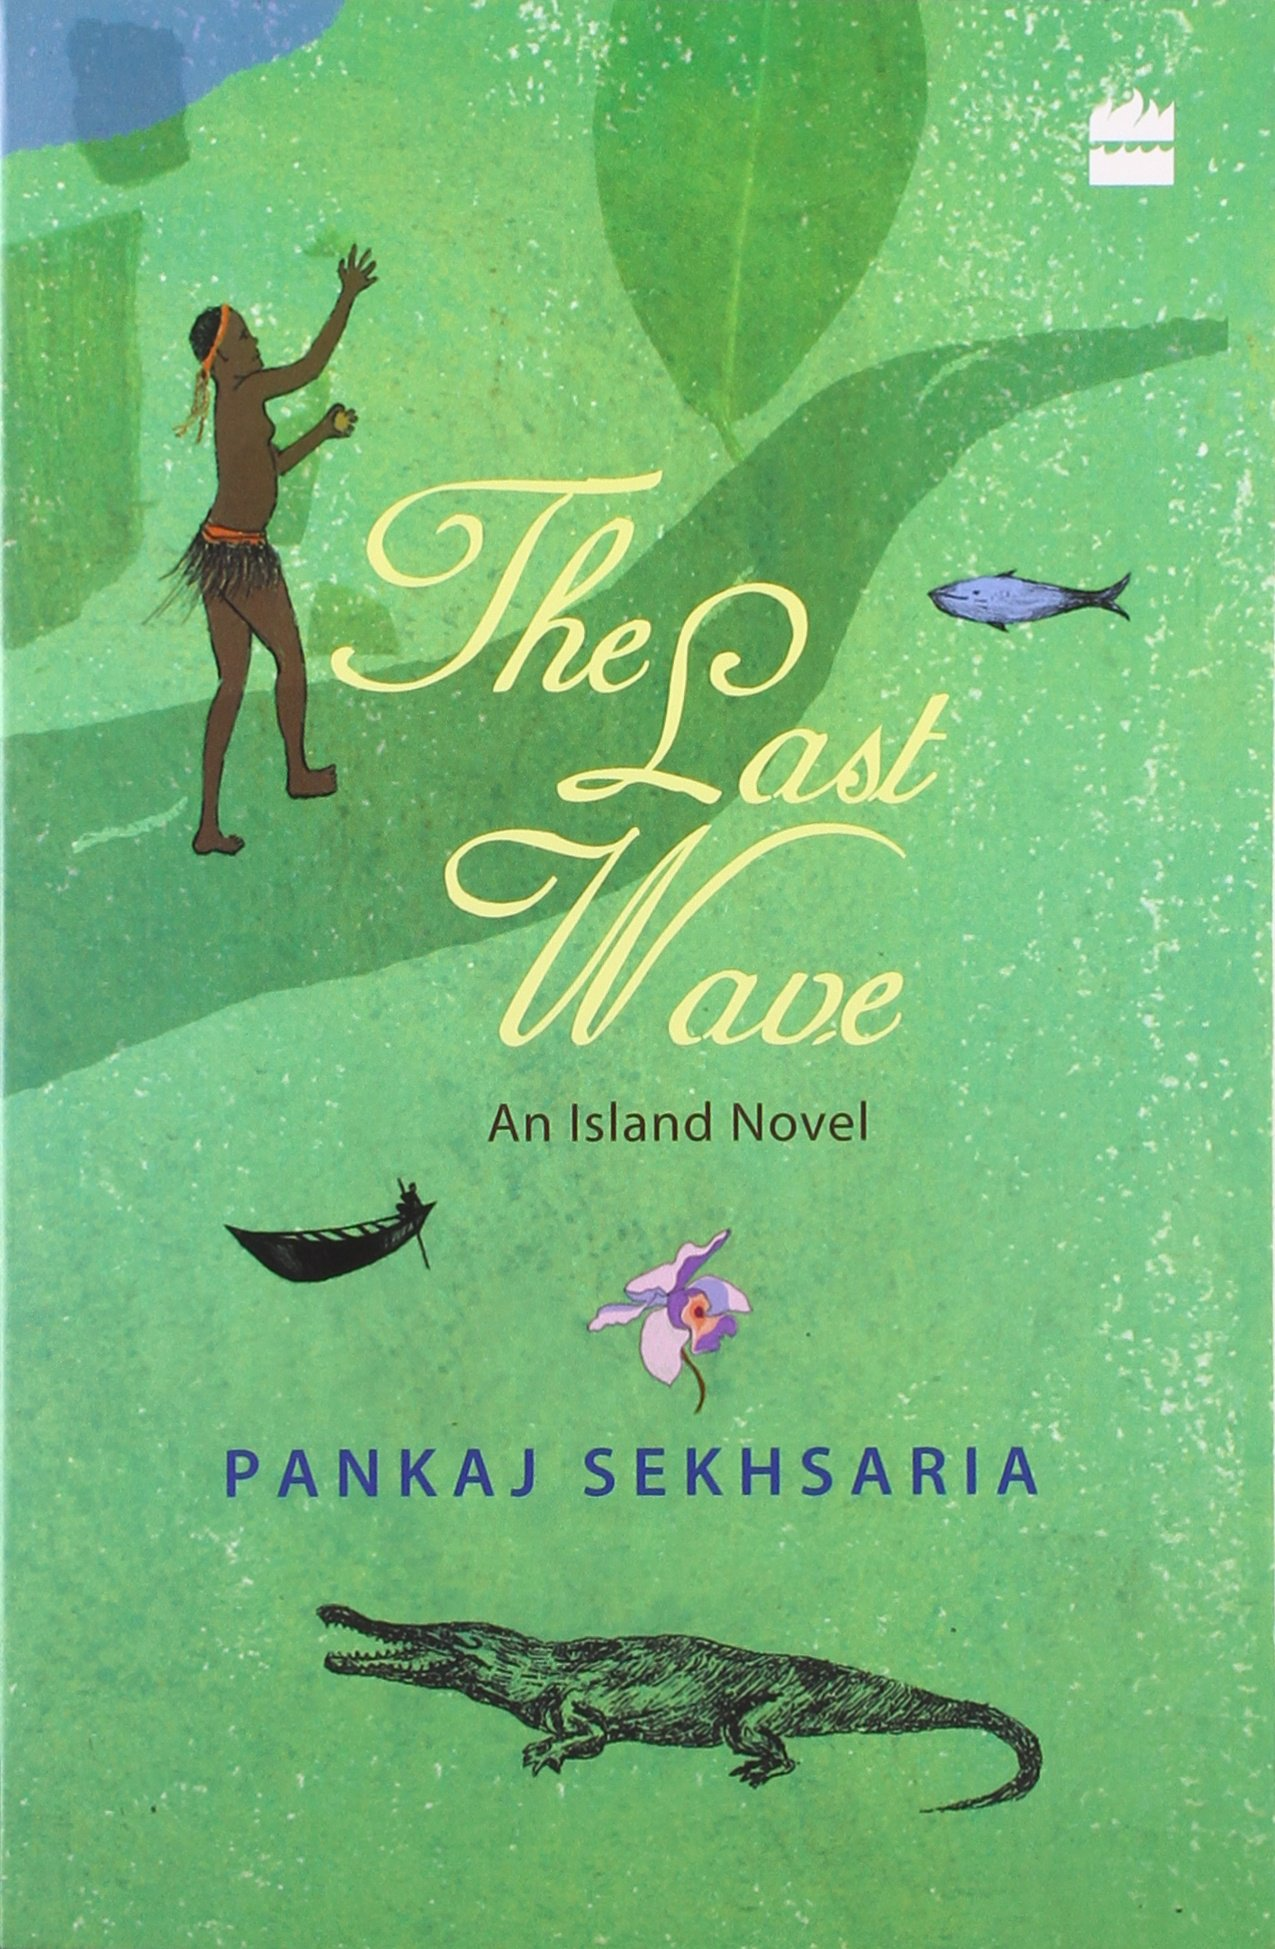 Buy The Last Wave Book Online at Low Prices in India | The Last Wave  Reviews & Ratings - Amazon.in